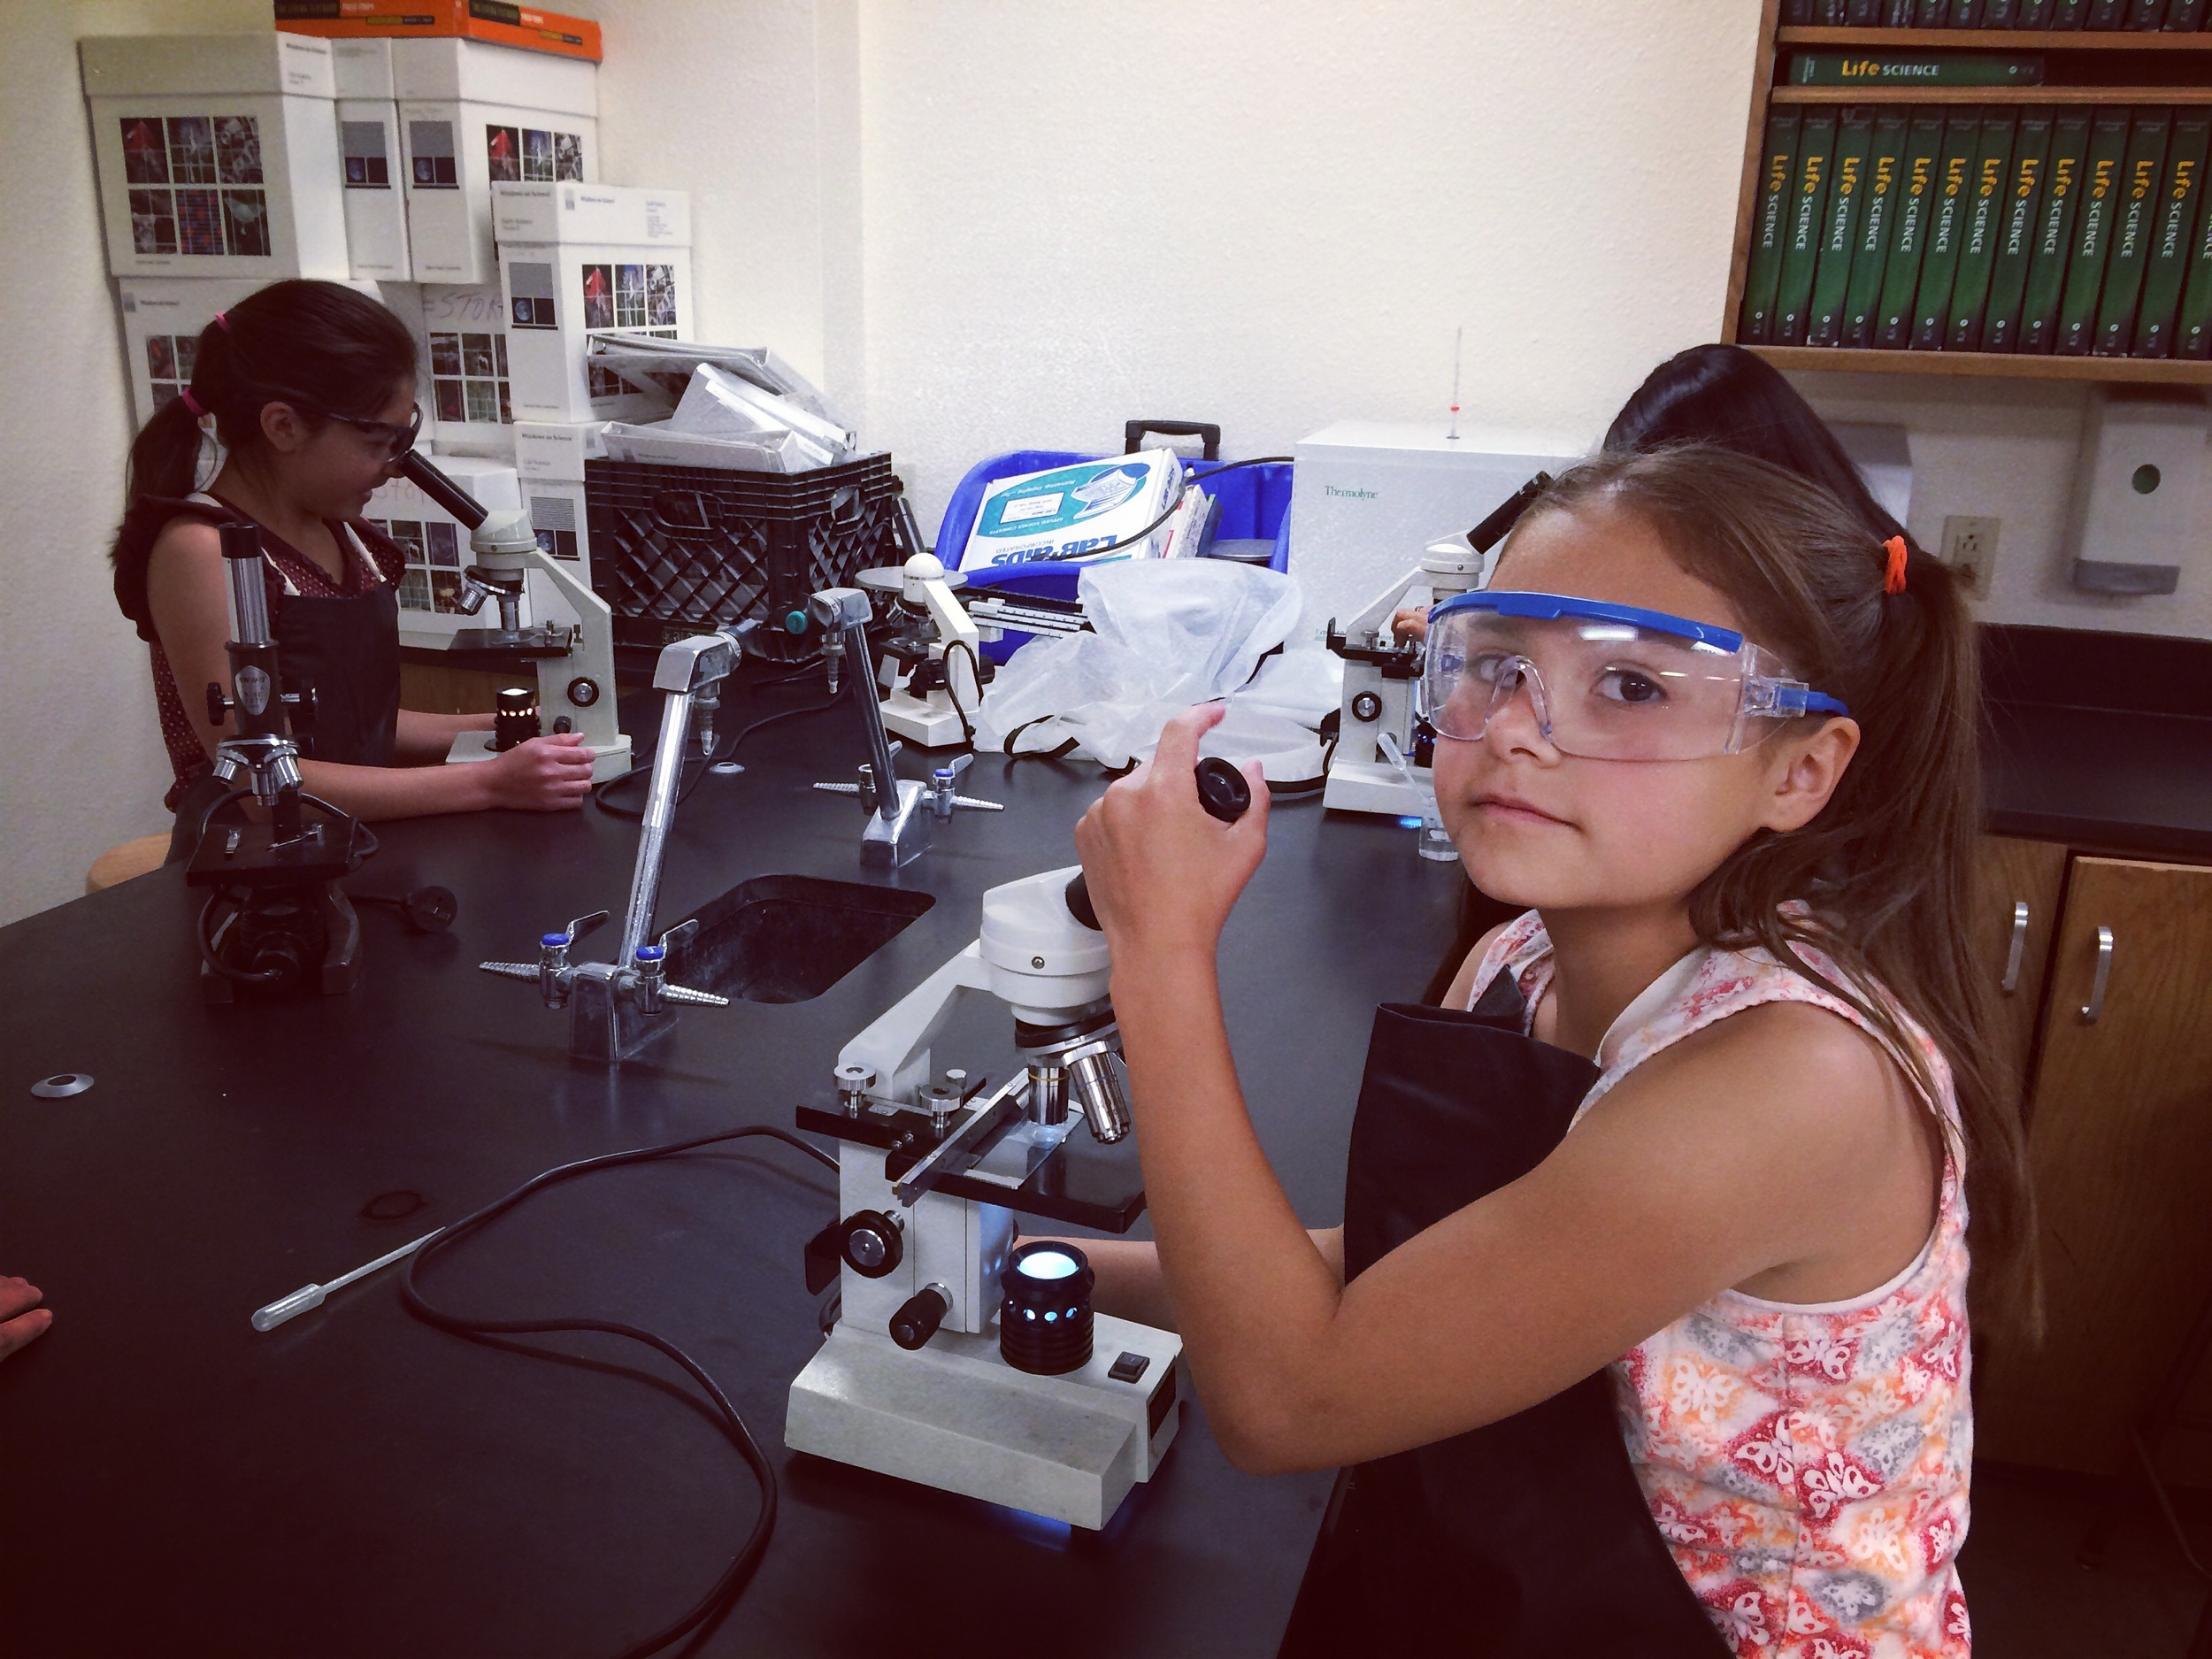 Students observe water samples under the microscope